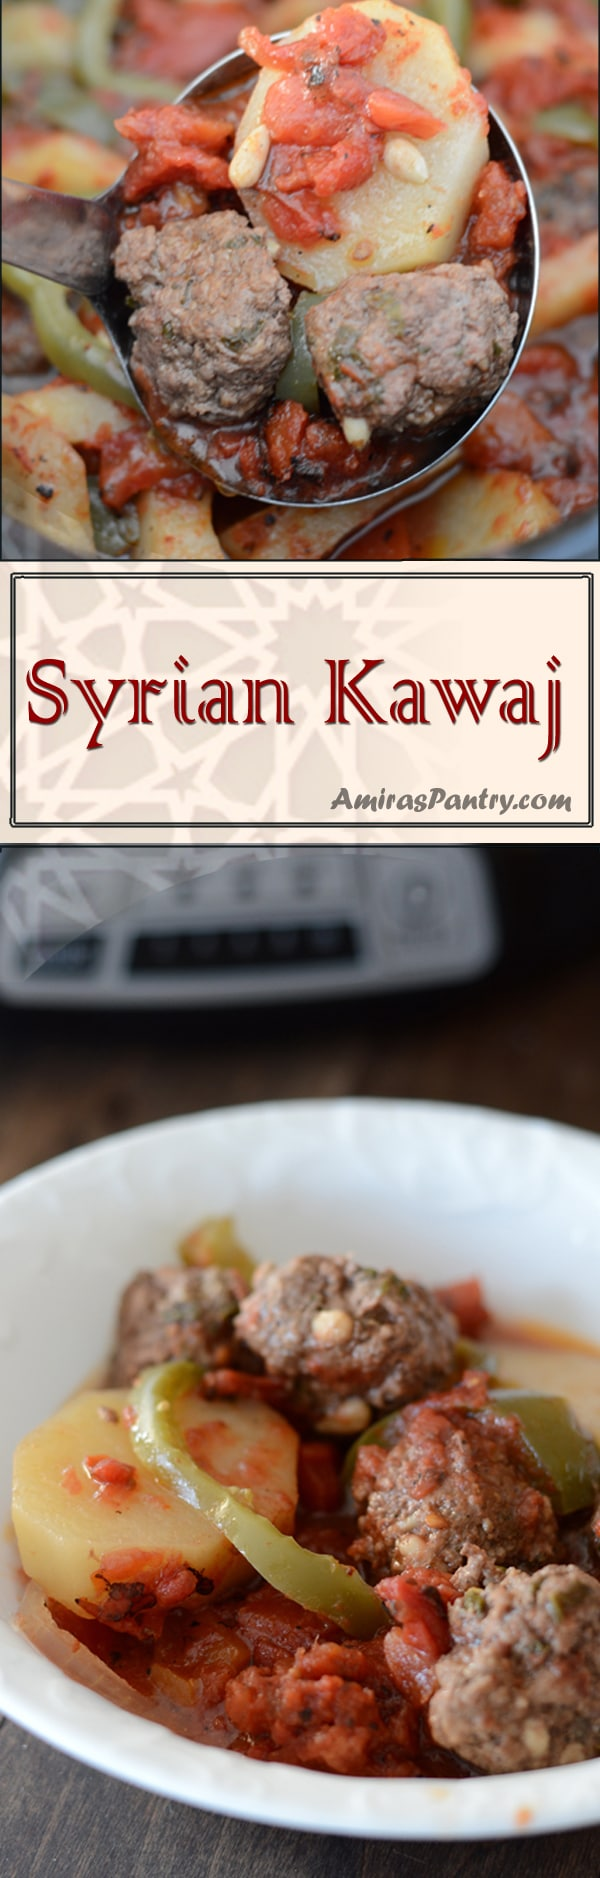 Syrian Kufta (Kawaj) is a a potato, tomato & minced meat bake, an easy weeknight dinner but this time it gets even easier with the slow cooker.